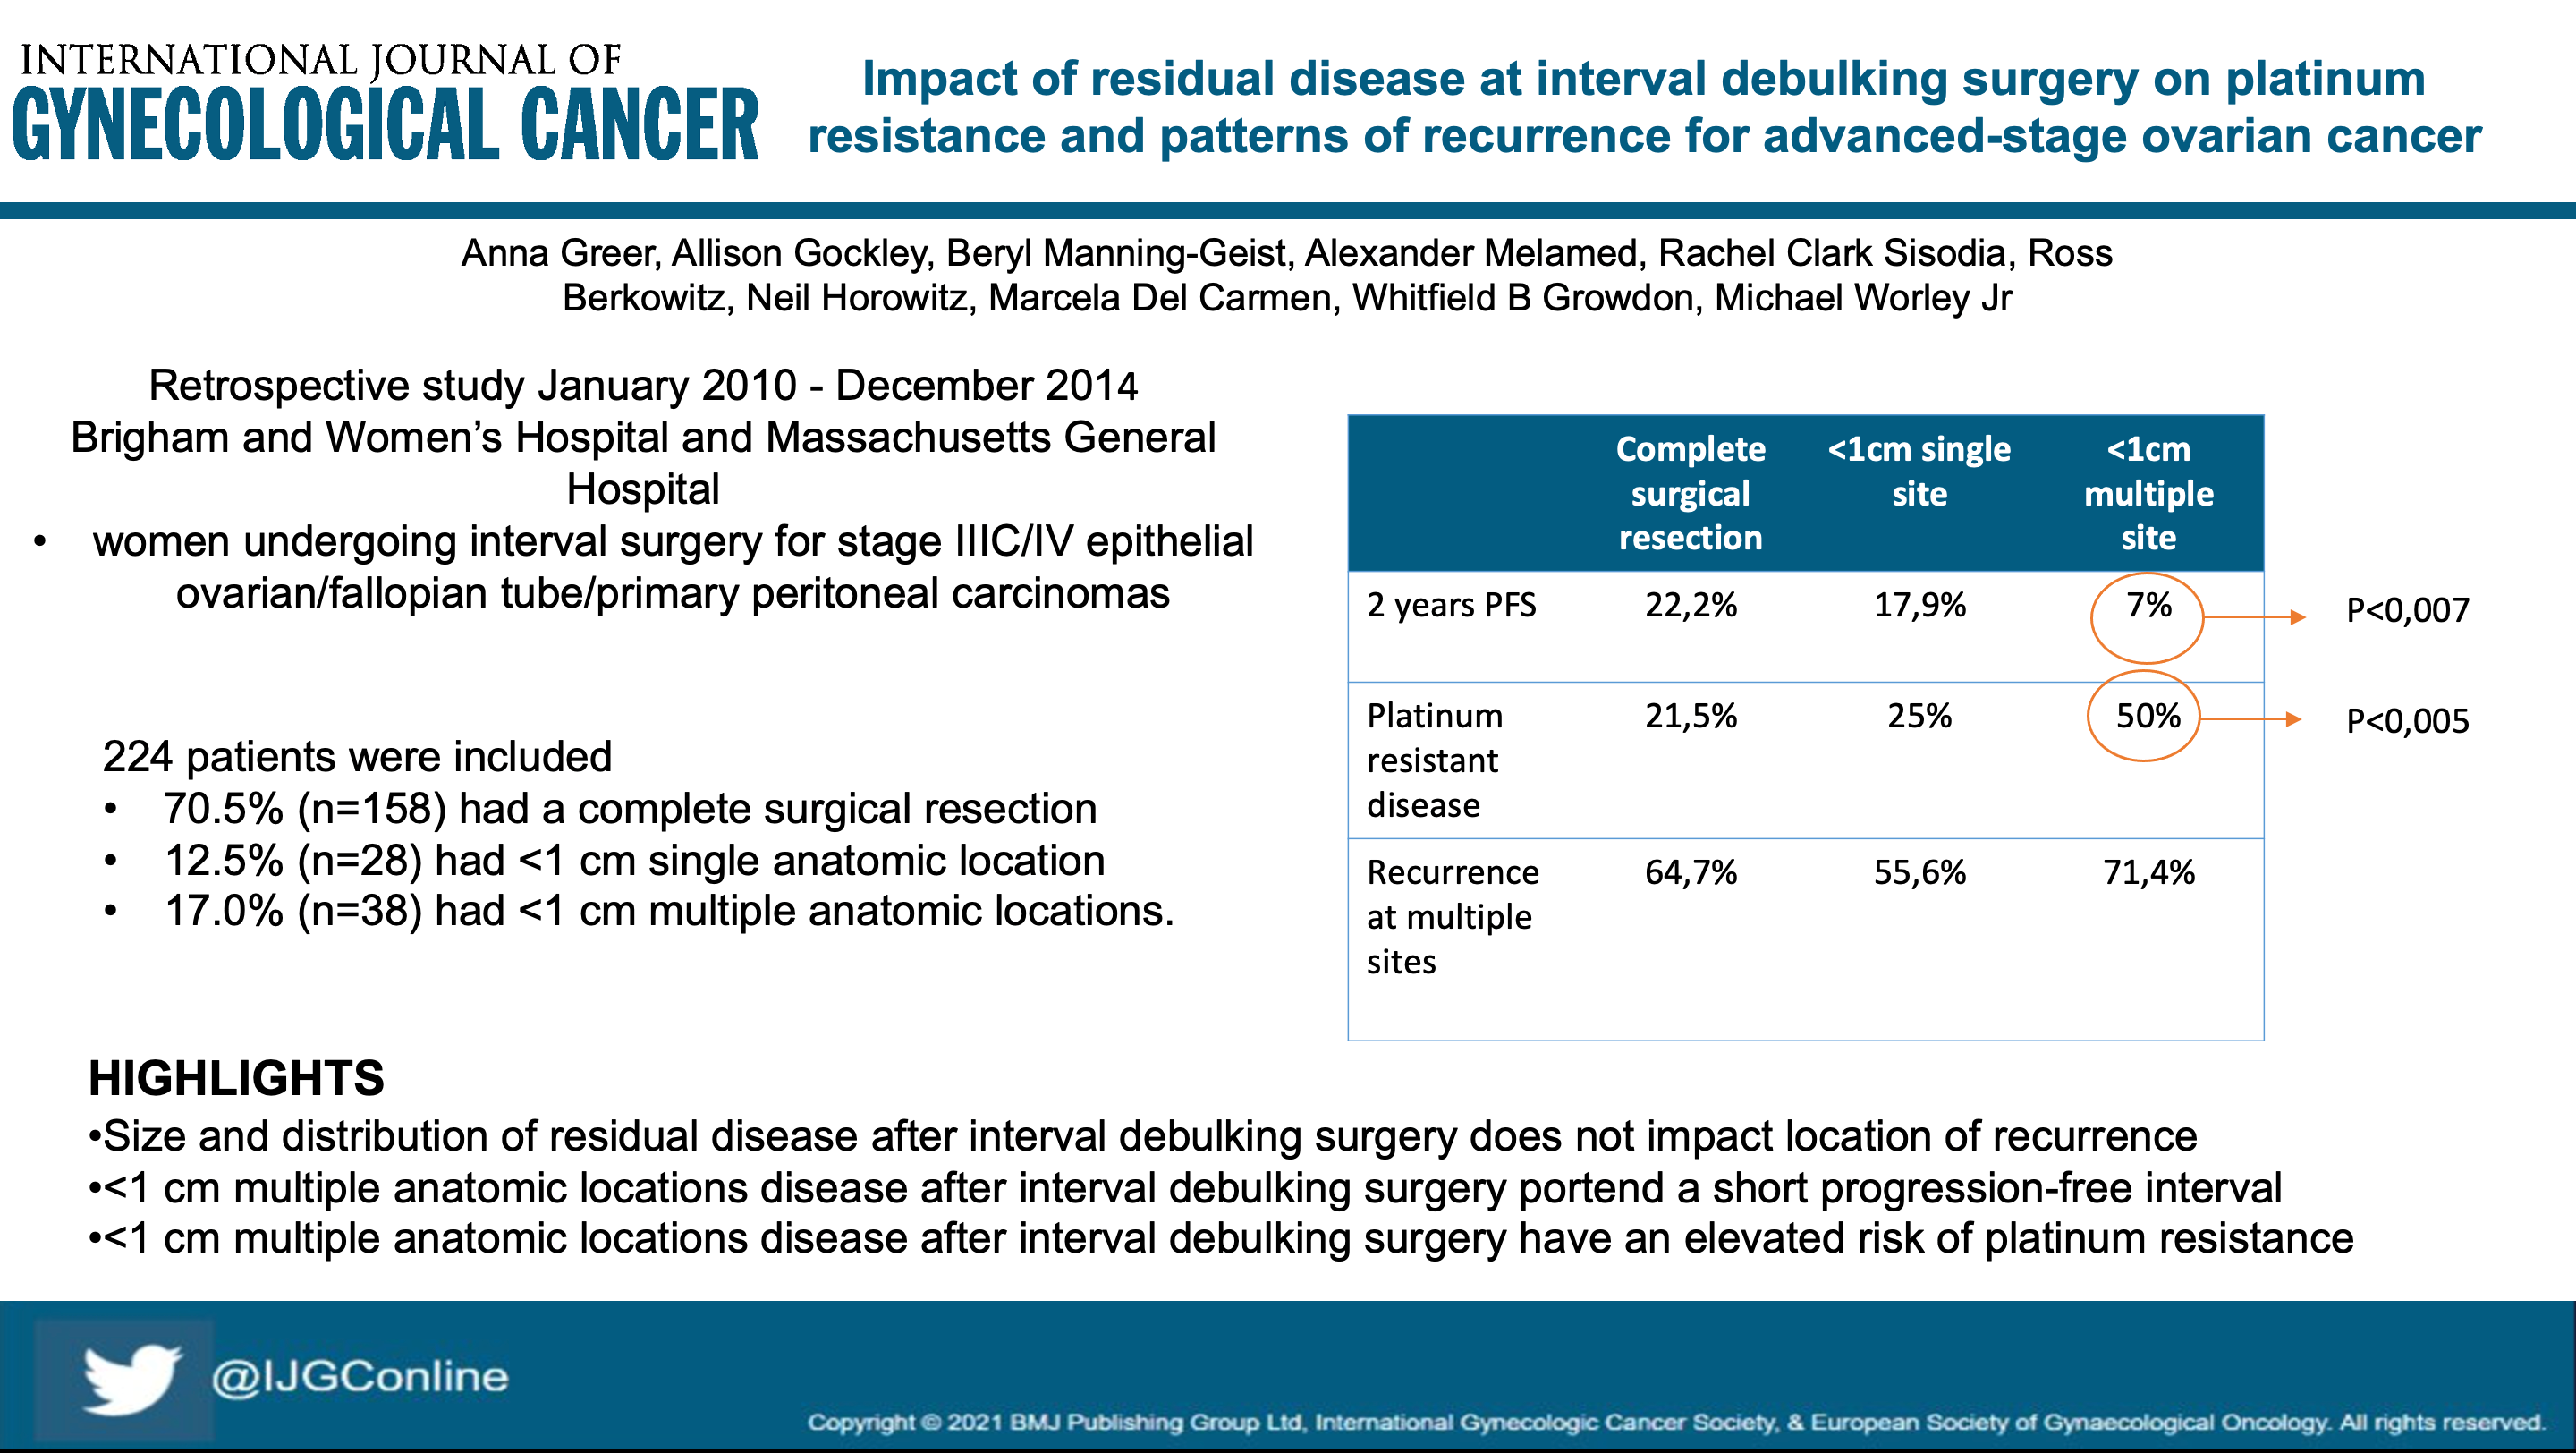 Impact of residual disease at interval debulking surgery on platinum resistance and patterns of recurrence for advanced stage ovarian cancer